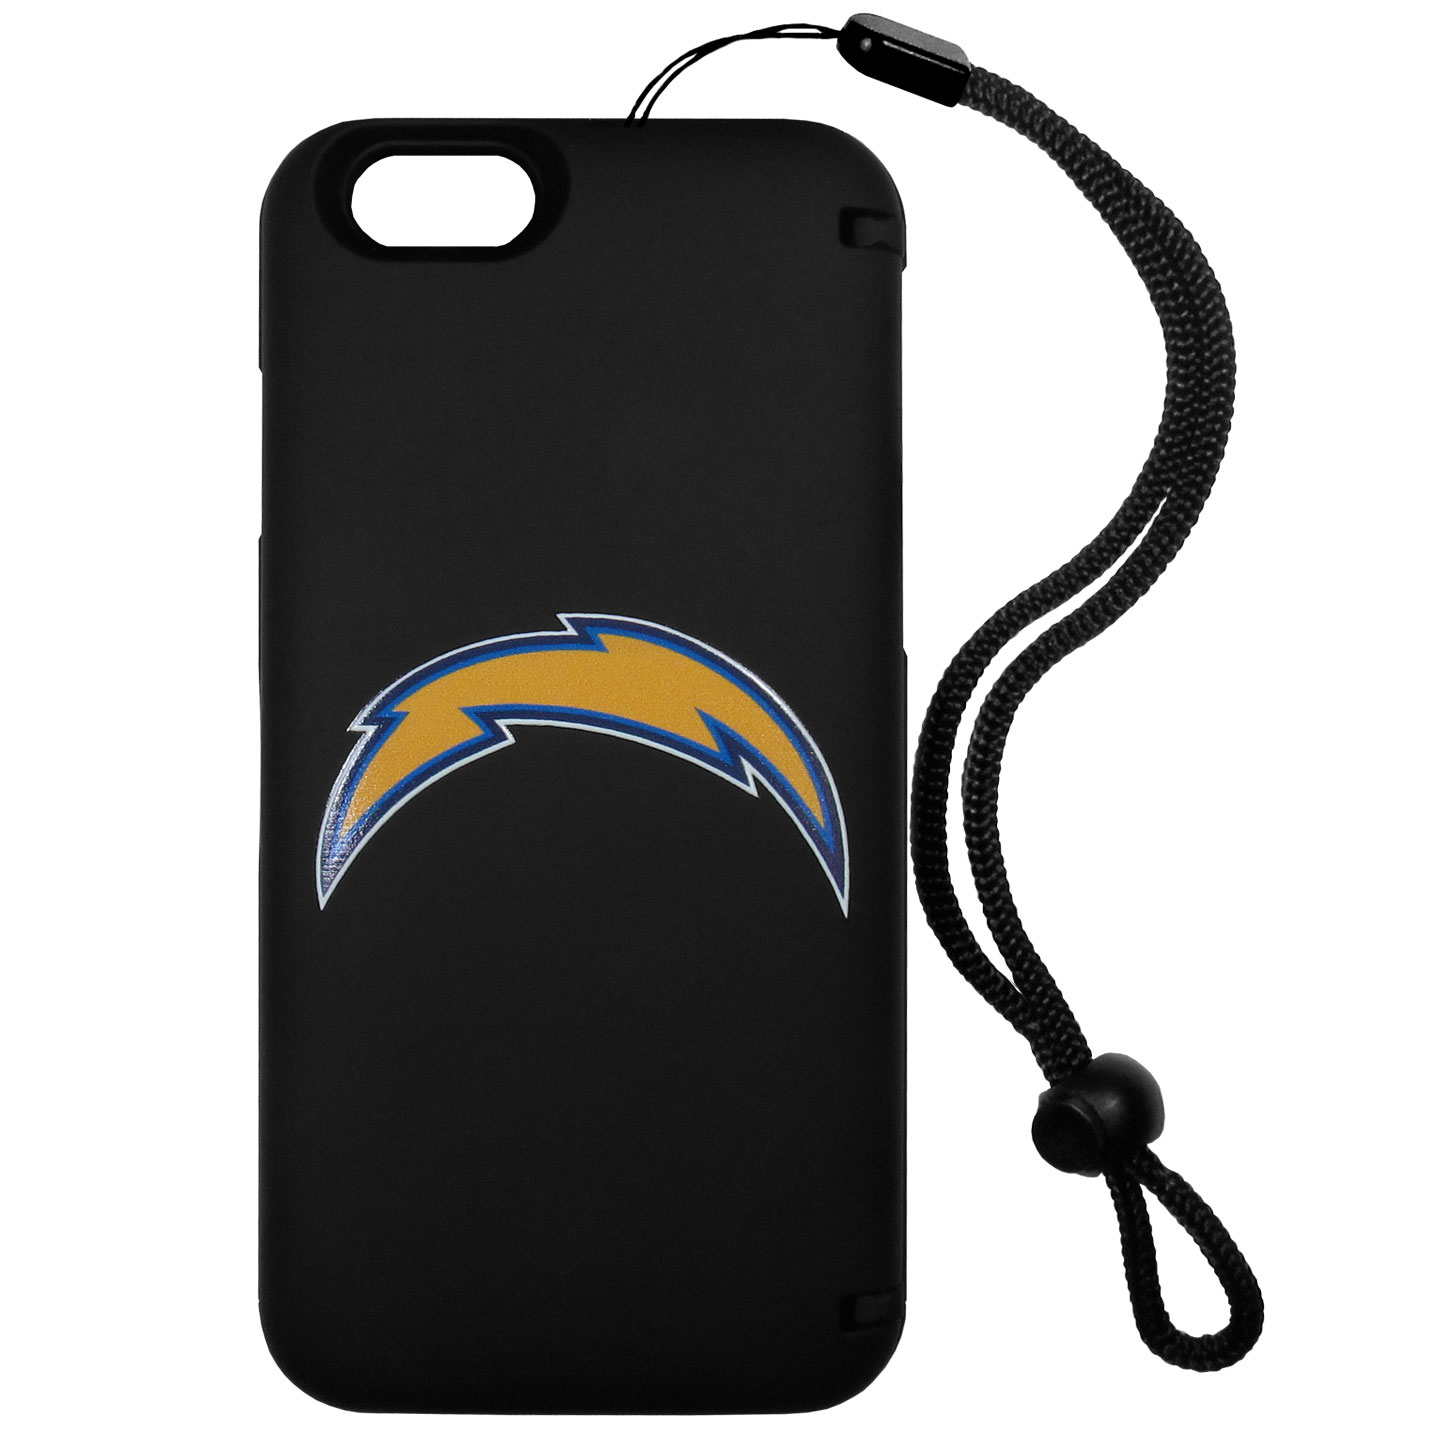 Los Angeles Chargers iPhone 6 Everything Case - This case really does have everything but the kitchen sink! The hidden compartment lets you keep your cards, money and tickets to the big game safe and secure and has a compact mirror so you can make sure your game face is ready to go. It also comes with a kickstand to make chatting and watching videos a breeze. The wrist strap allows you to travel with ease with your everything case. If that's not enough, it also comes with the Los Angeles Chargers logo printed in expert detail on the front.